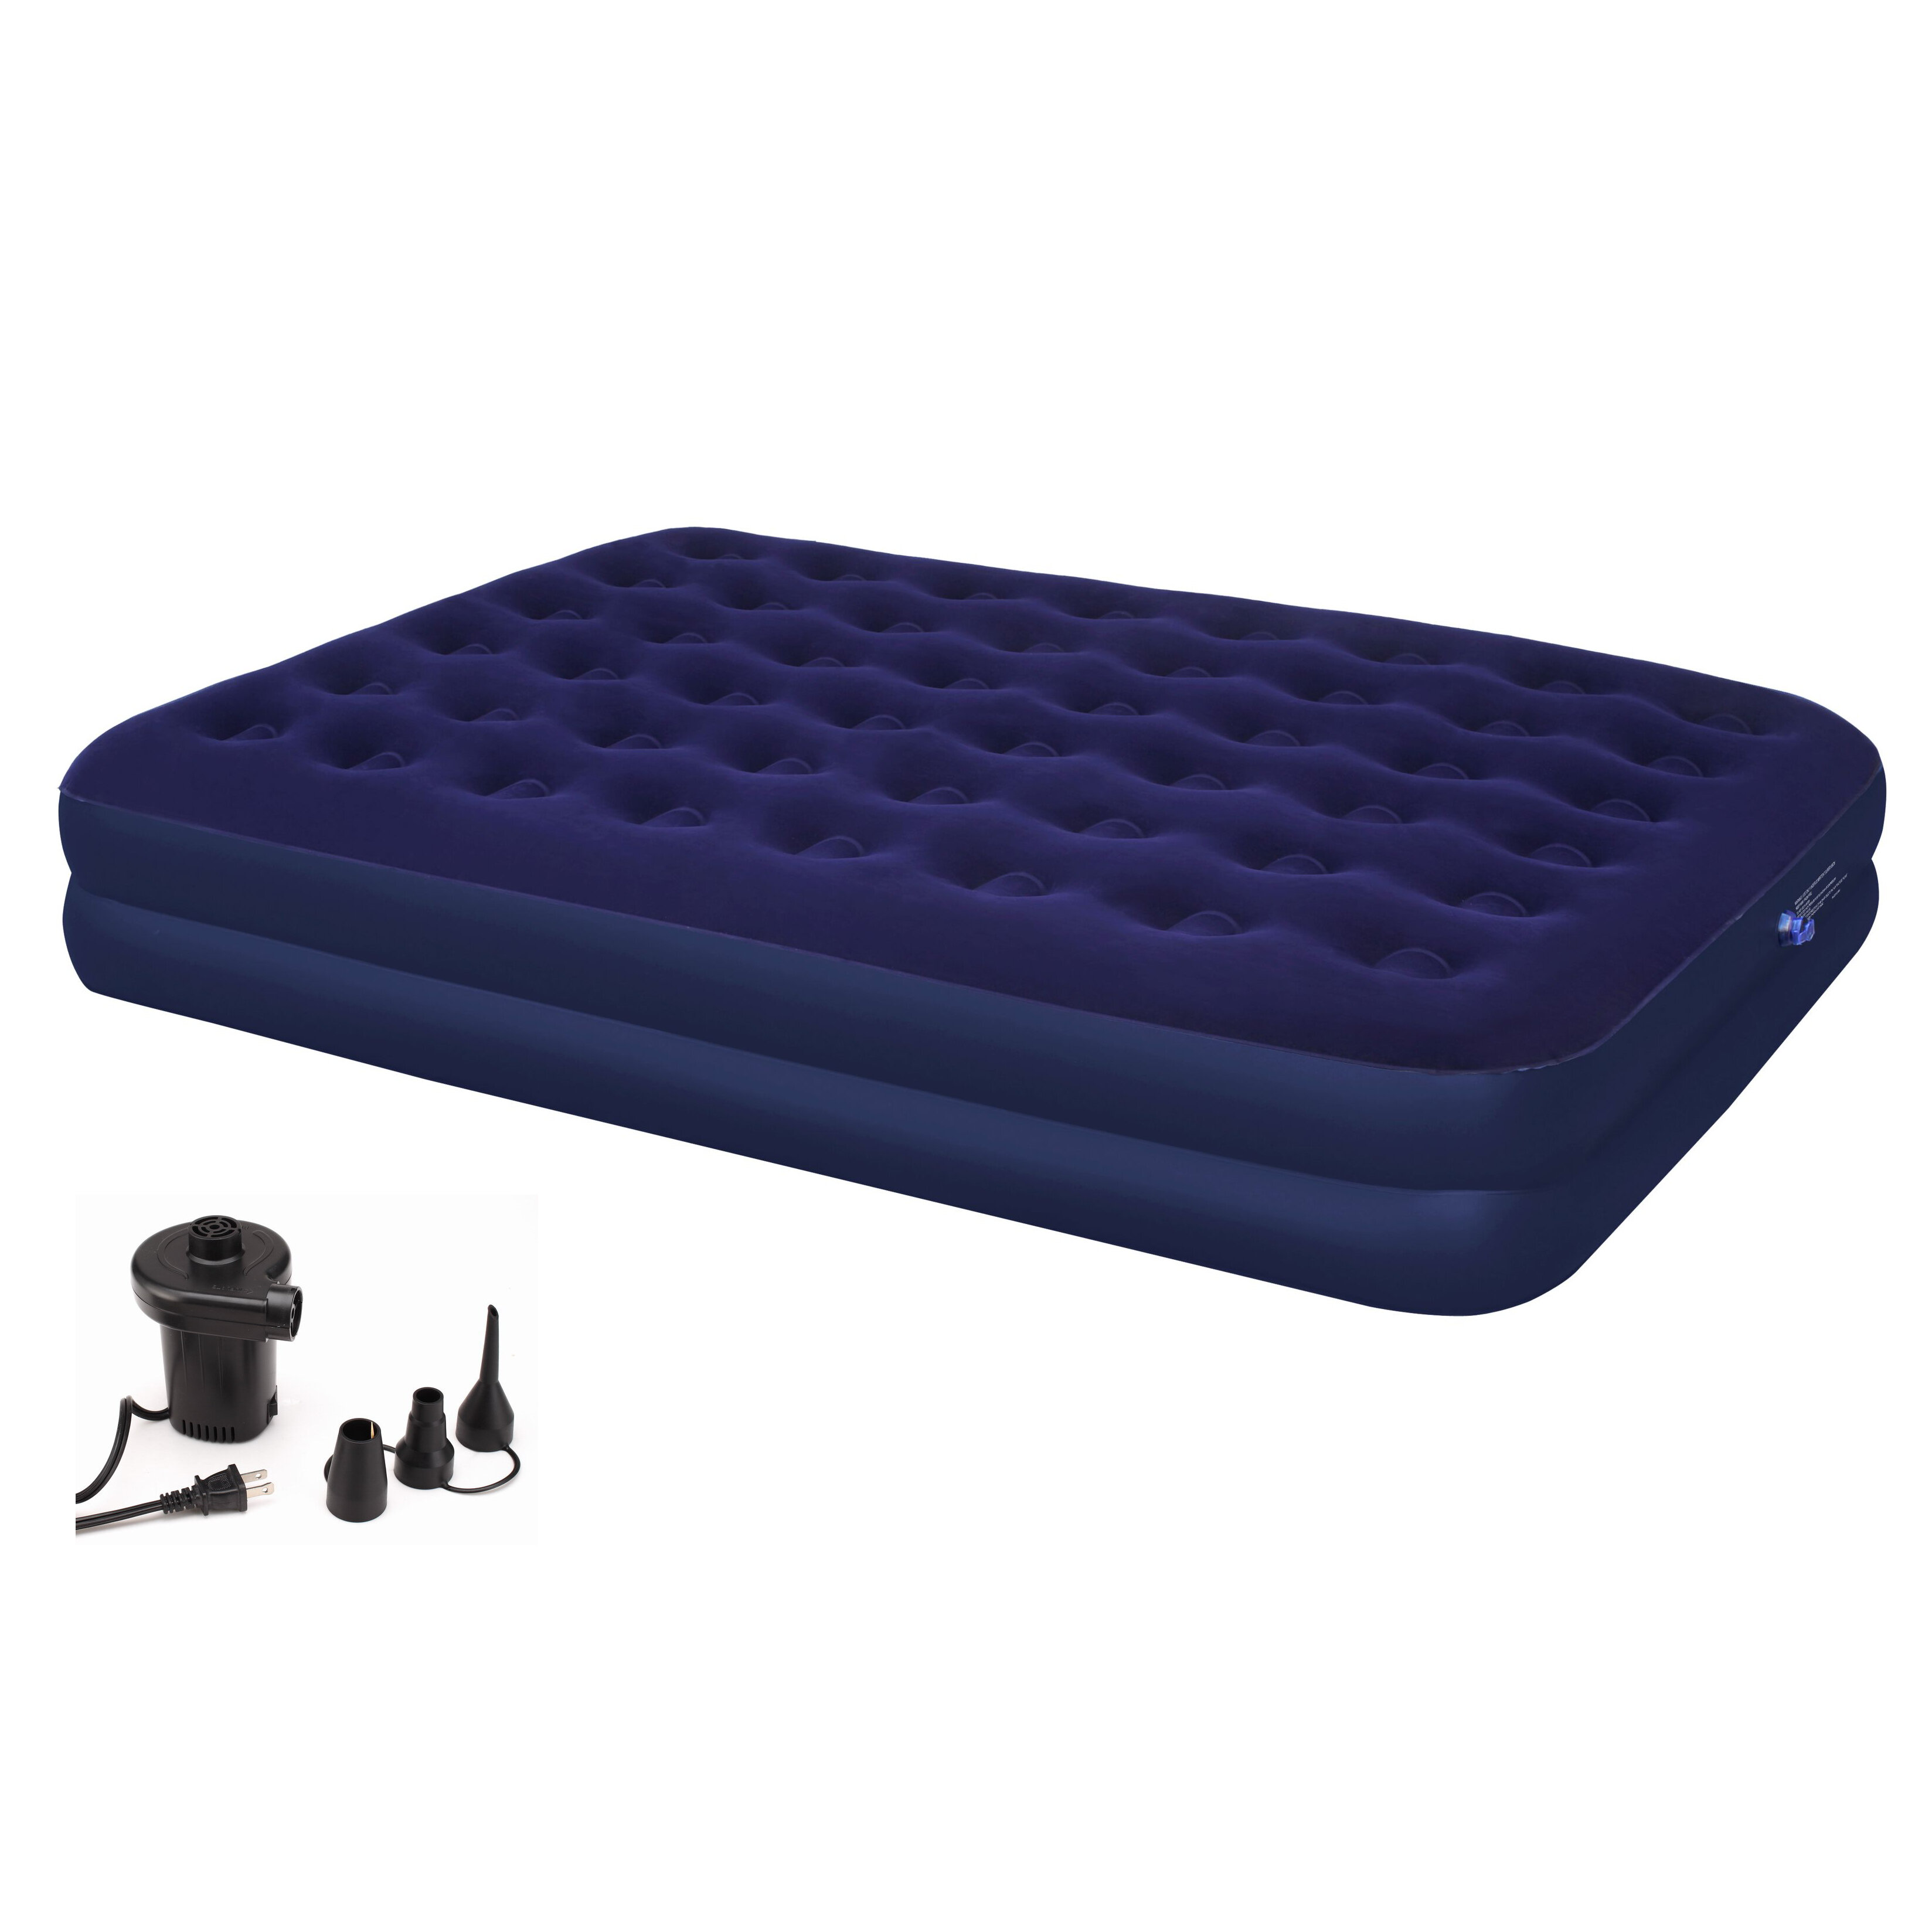 pumps ojsnrrz how to use luxury blogbeen deluxe intex rest mattress pack twin pillow make of raised air mattresses